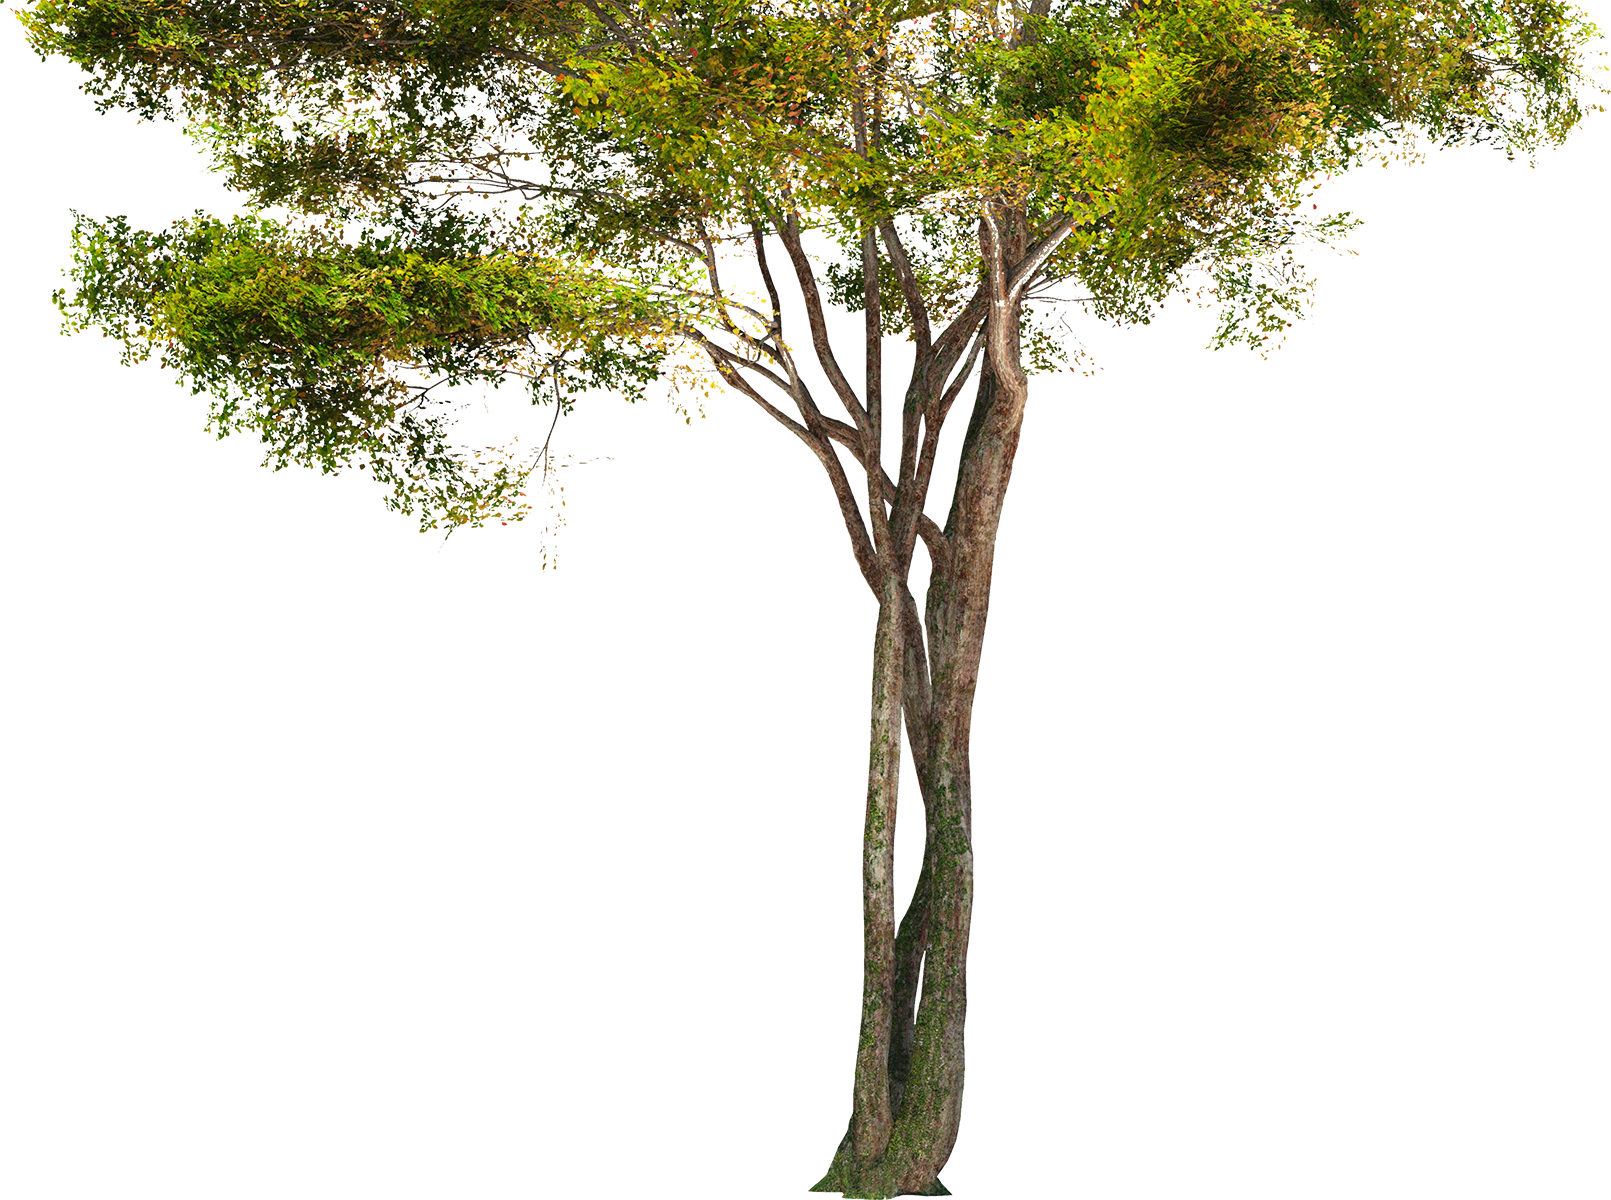 PNG HD Images Of Trees - 126435